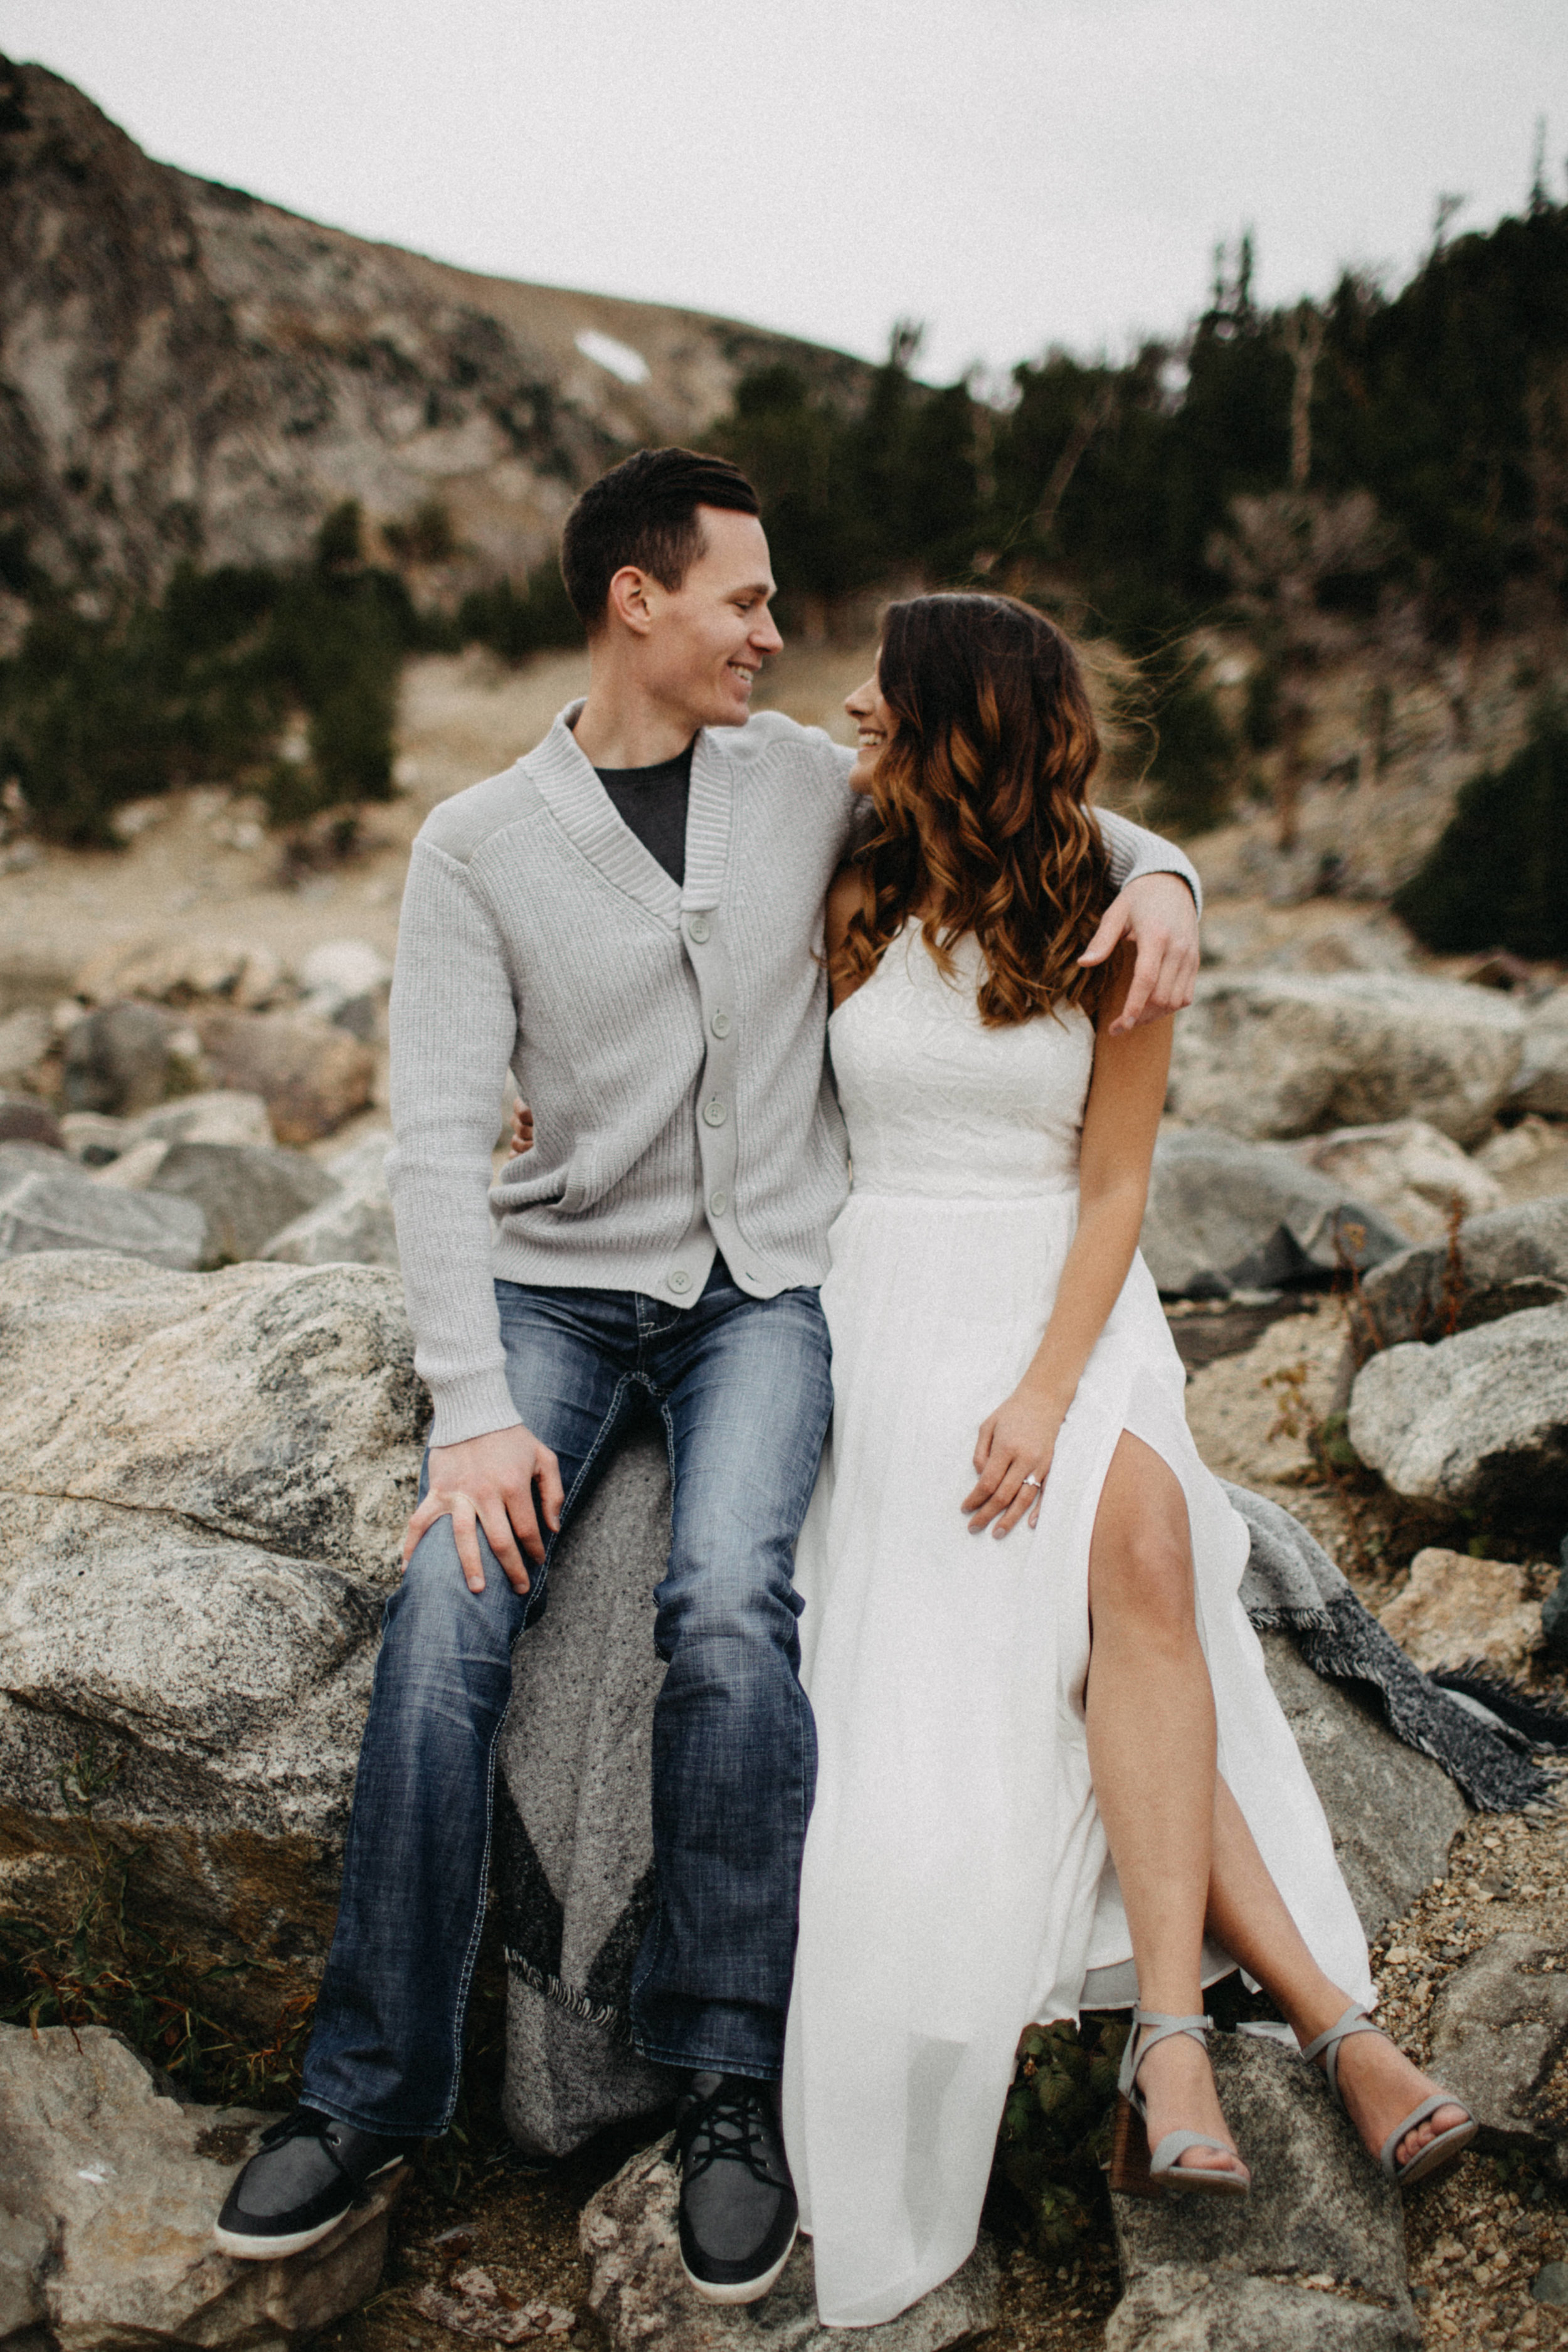 Engagement Photography in Denver, Colorado